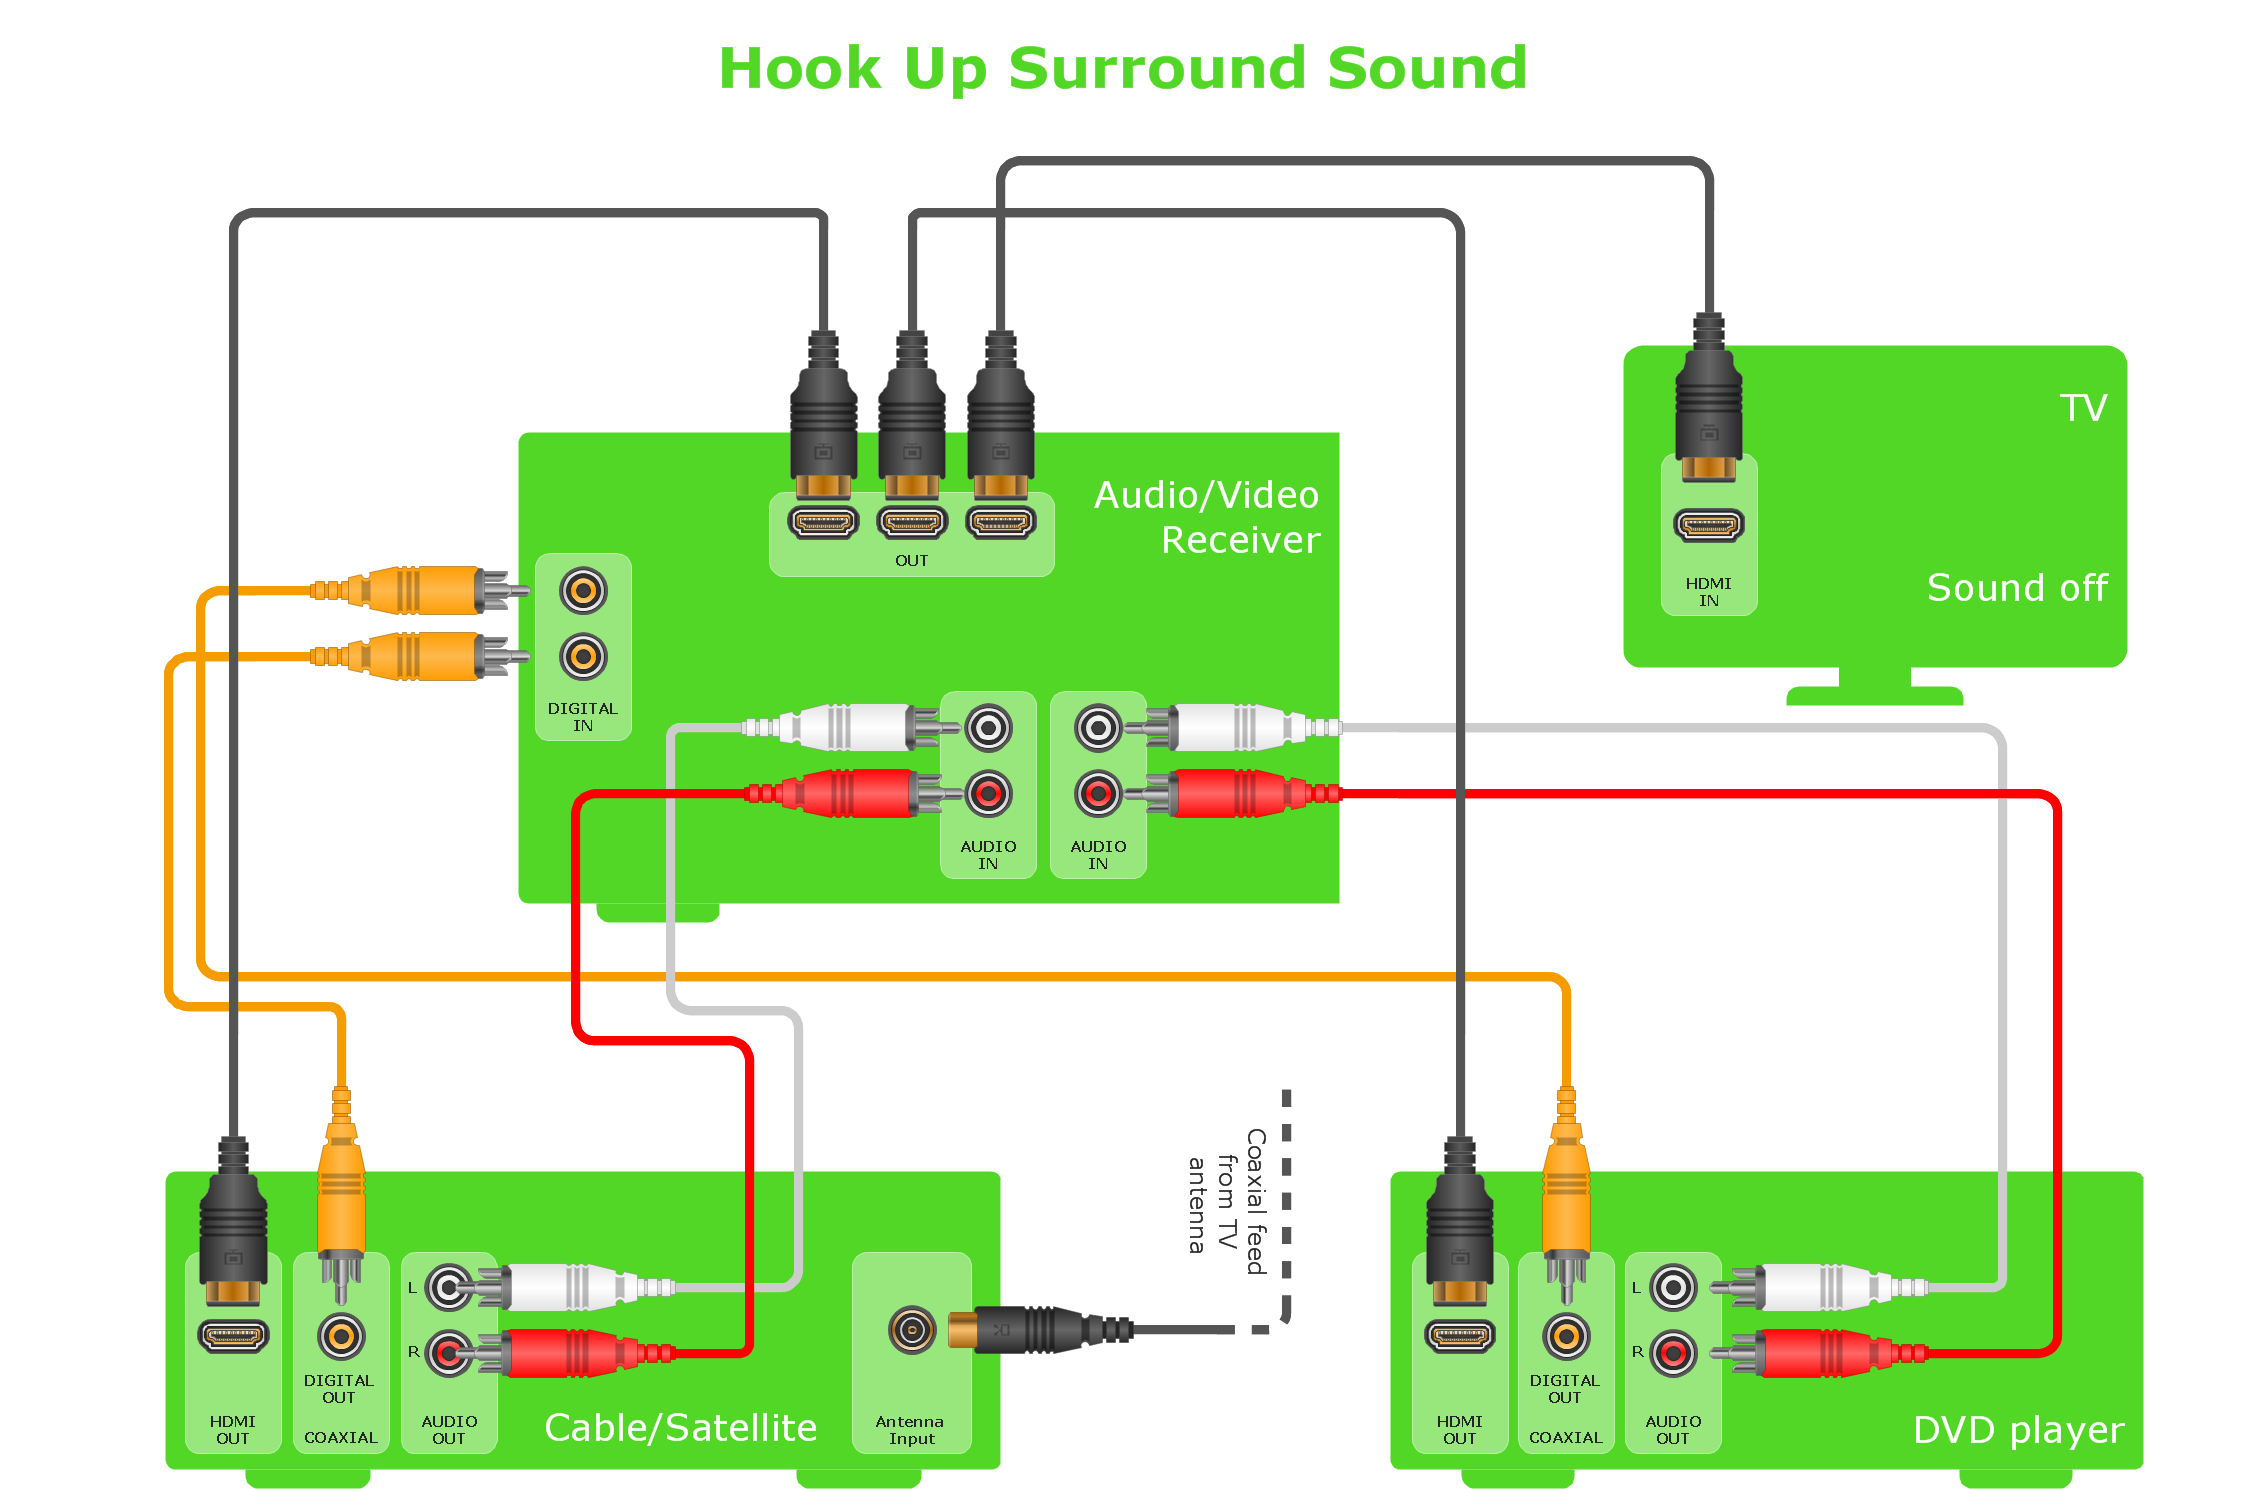 Surround Sound Systems Circuit Diagram Schematics Wiring Diagrams Bar Audio Video Connector Types Libraries Templates And Samples Rh Conceptdraw Com Sony 51 System